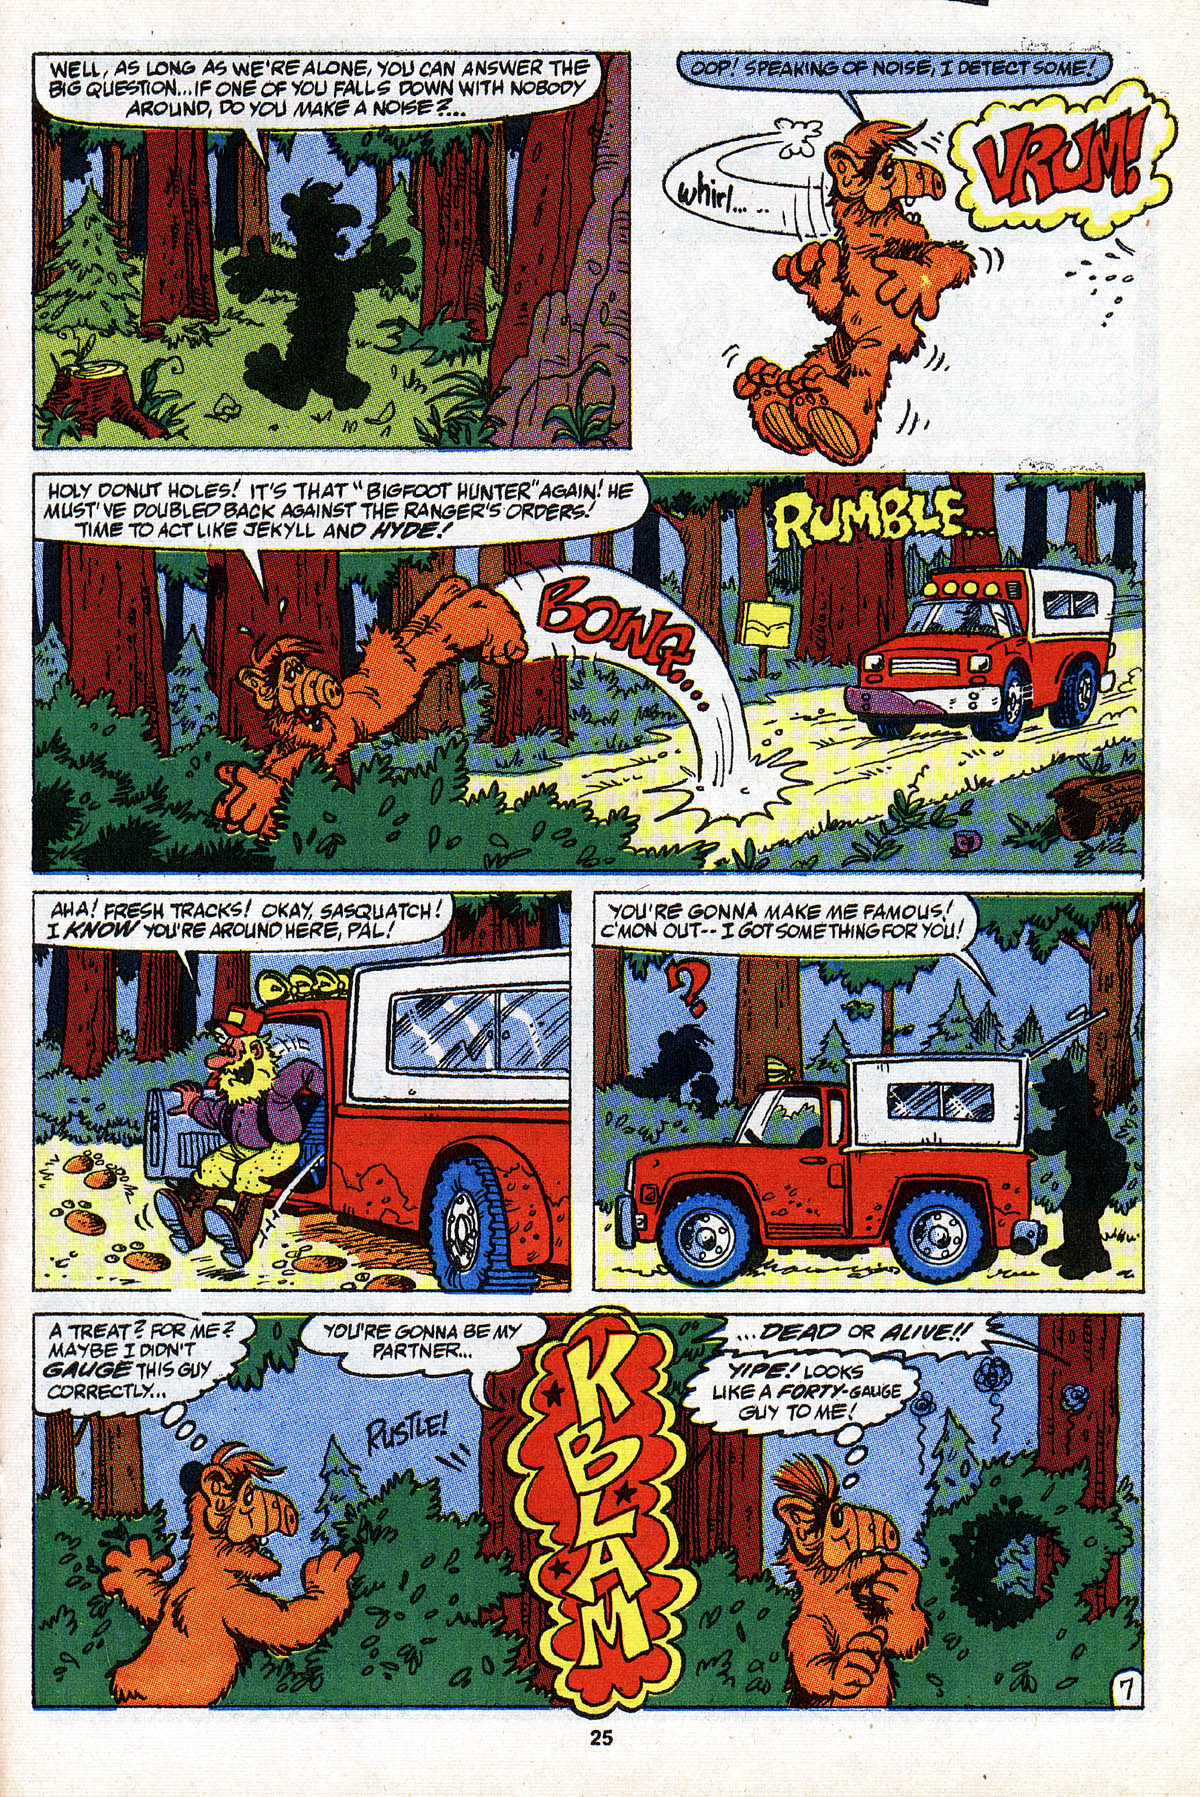 Read online ALF comic -  Issue #28 - 27